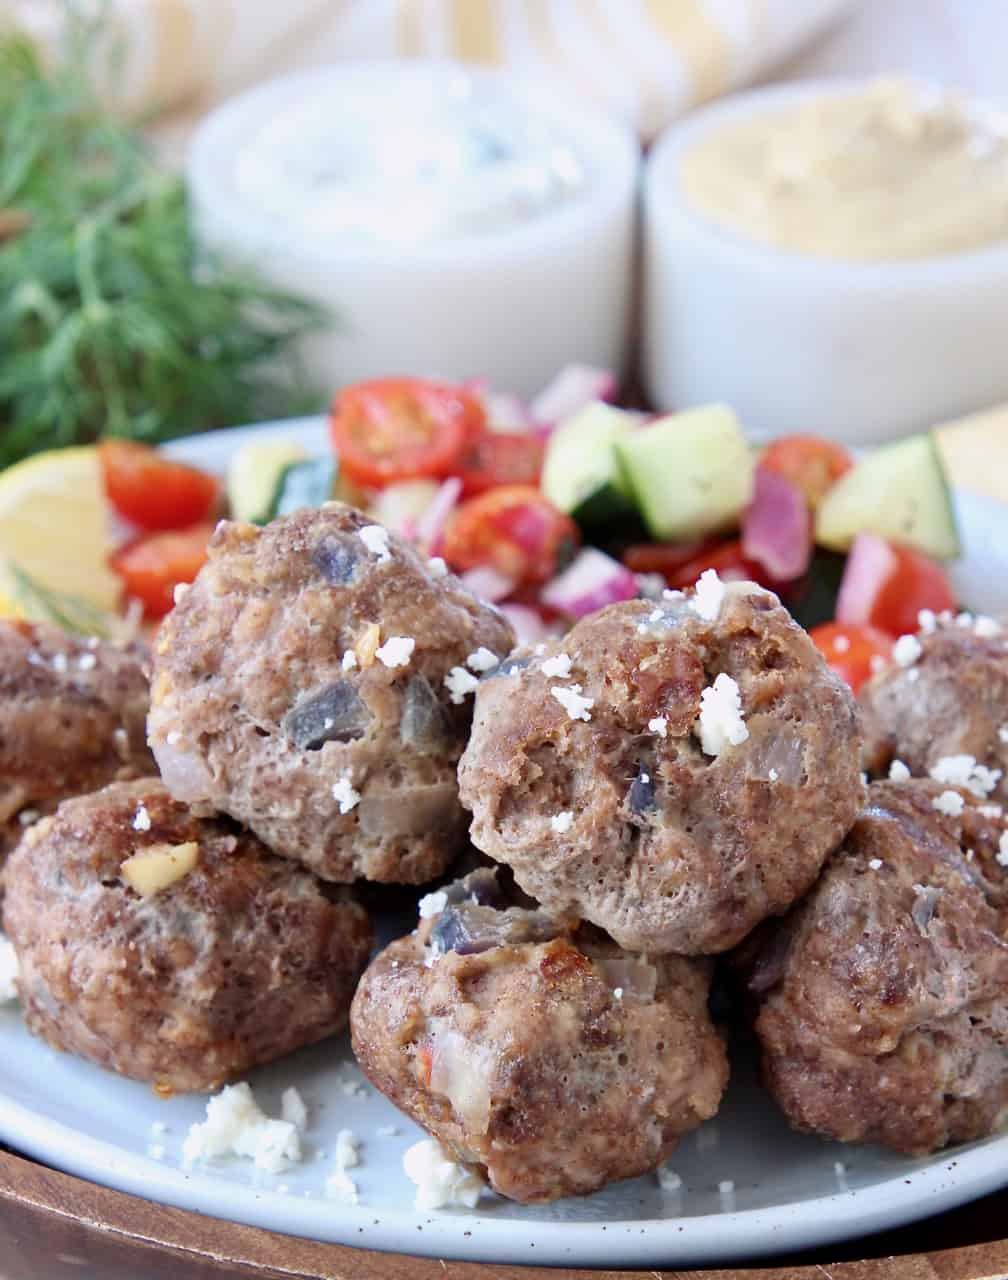 Greek meatballs on plate topped with crumbled feta cheese